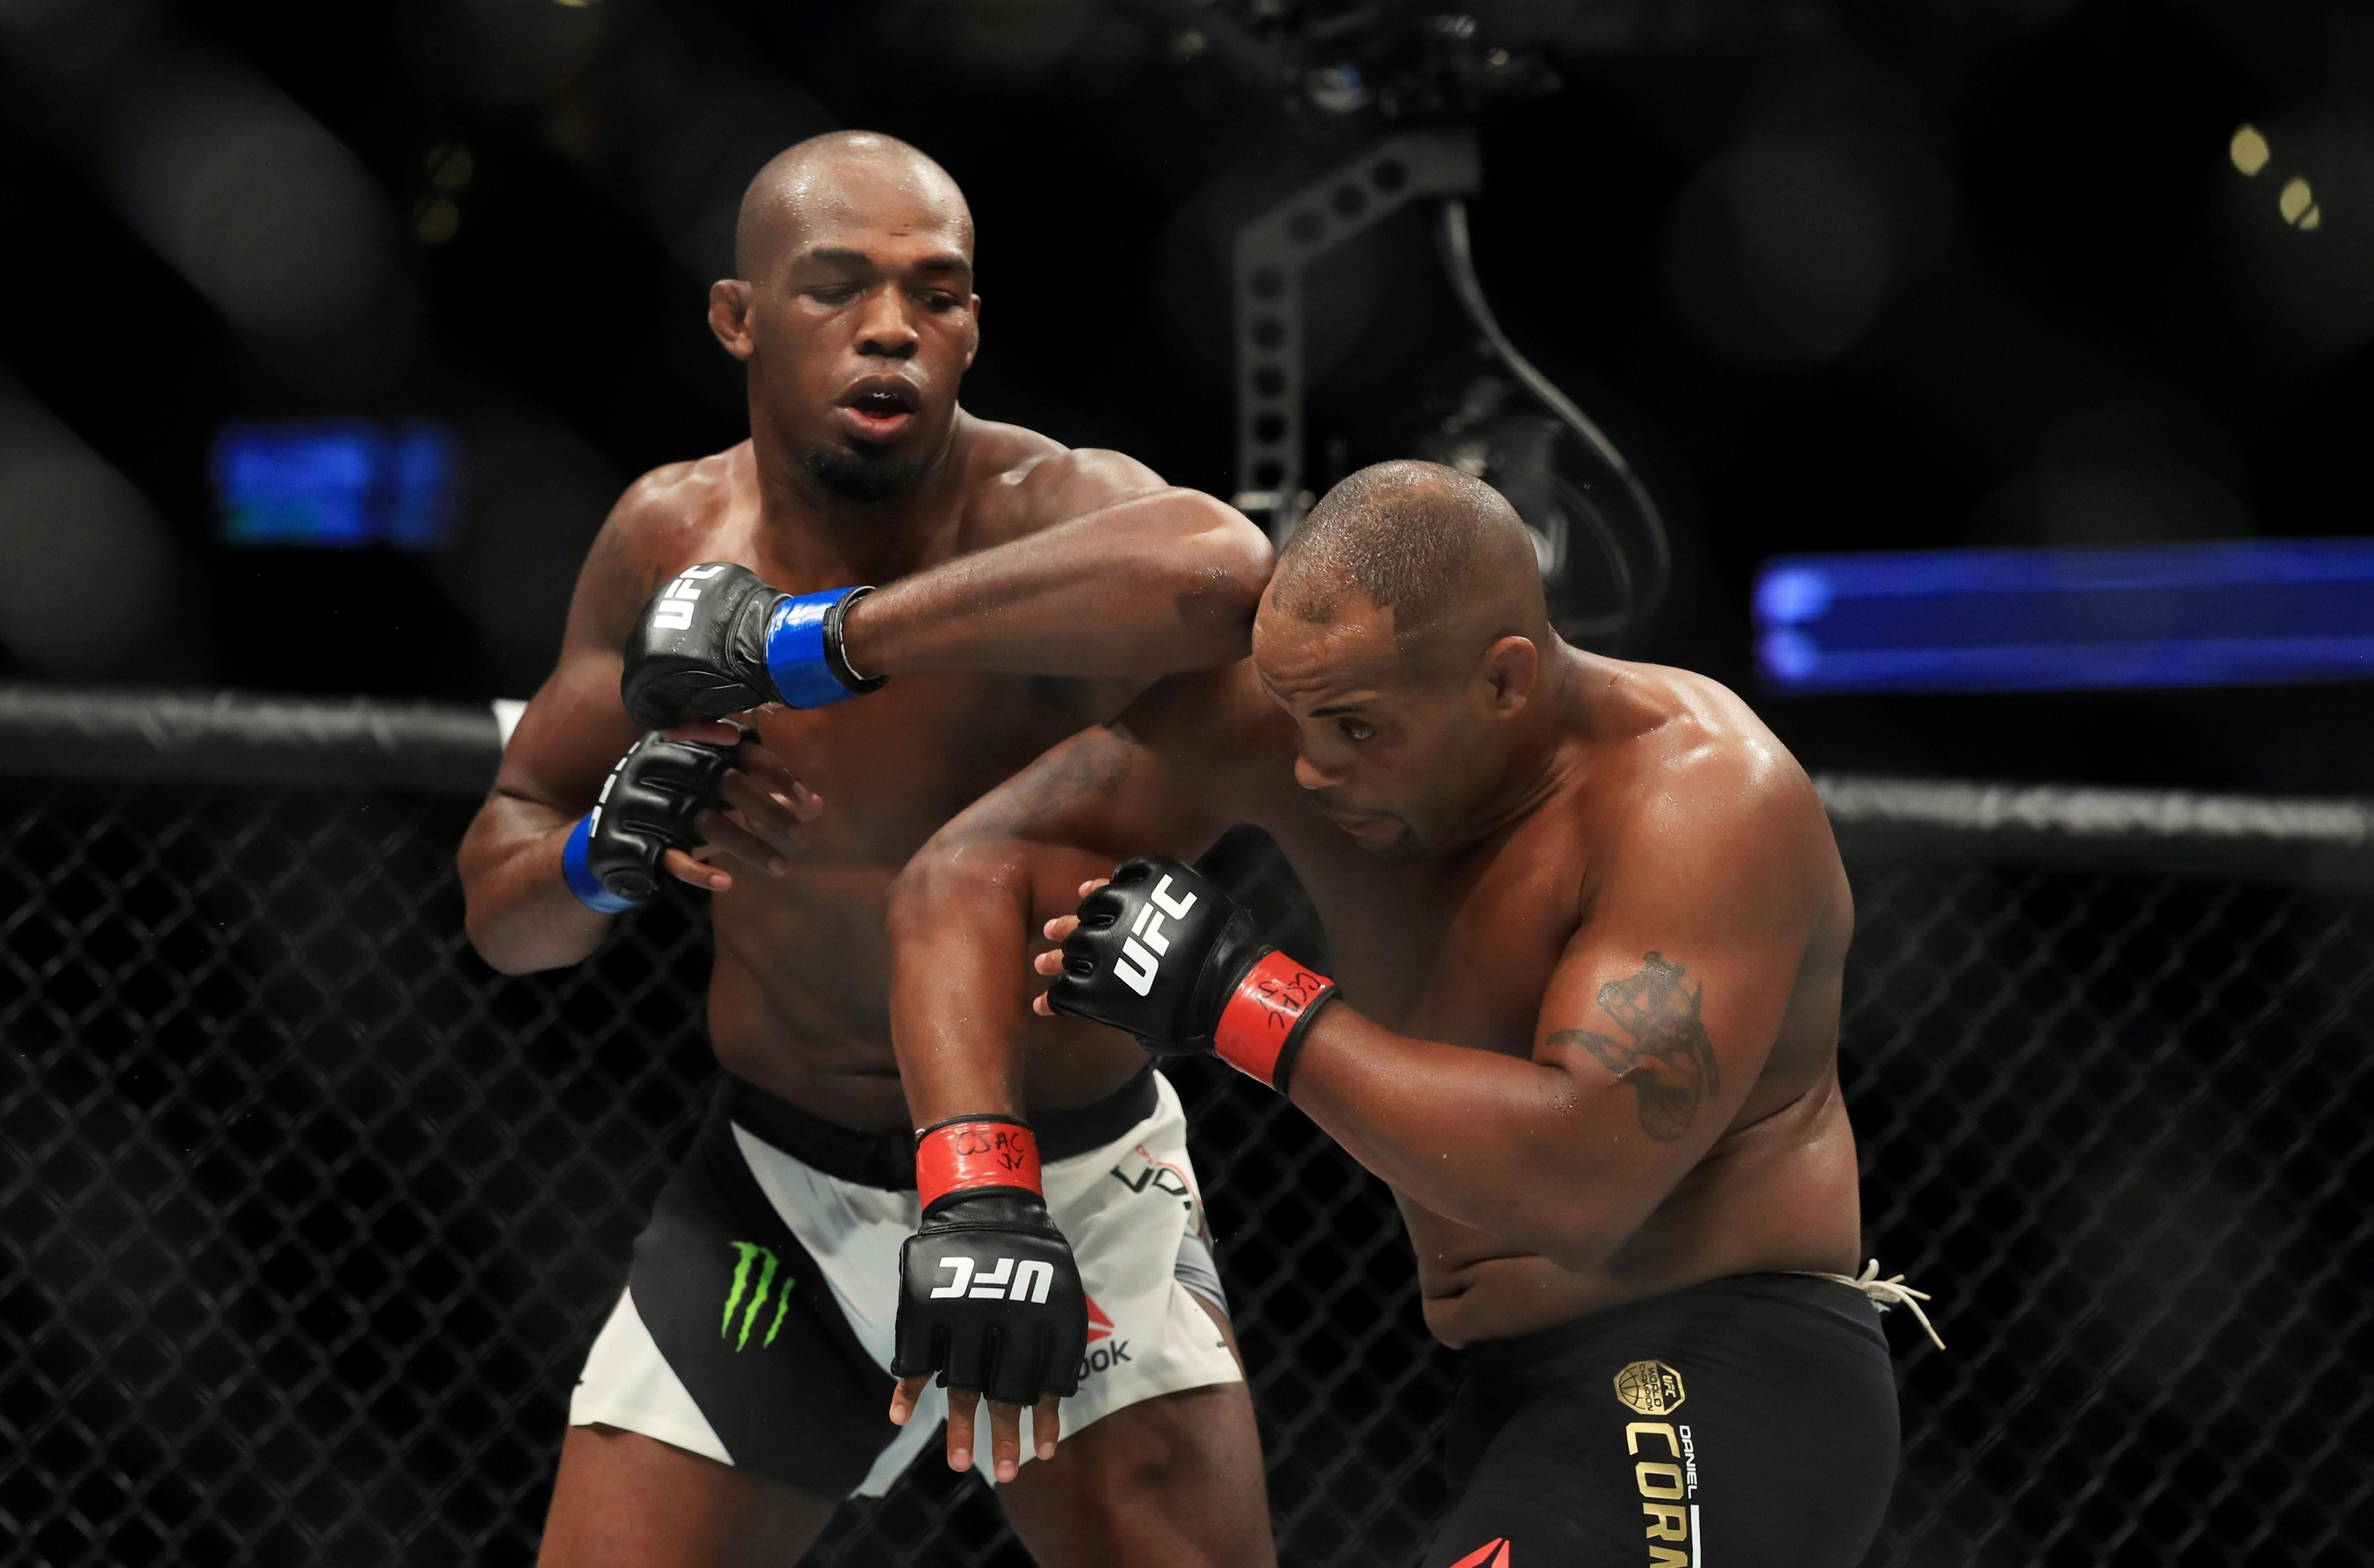 The 31-year-old failed his second drugs test after defeating Daniel Cormier in June 2017